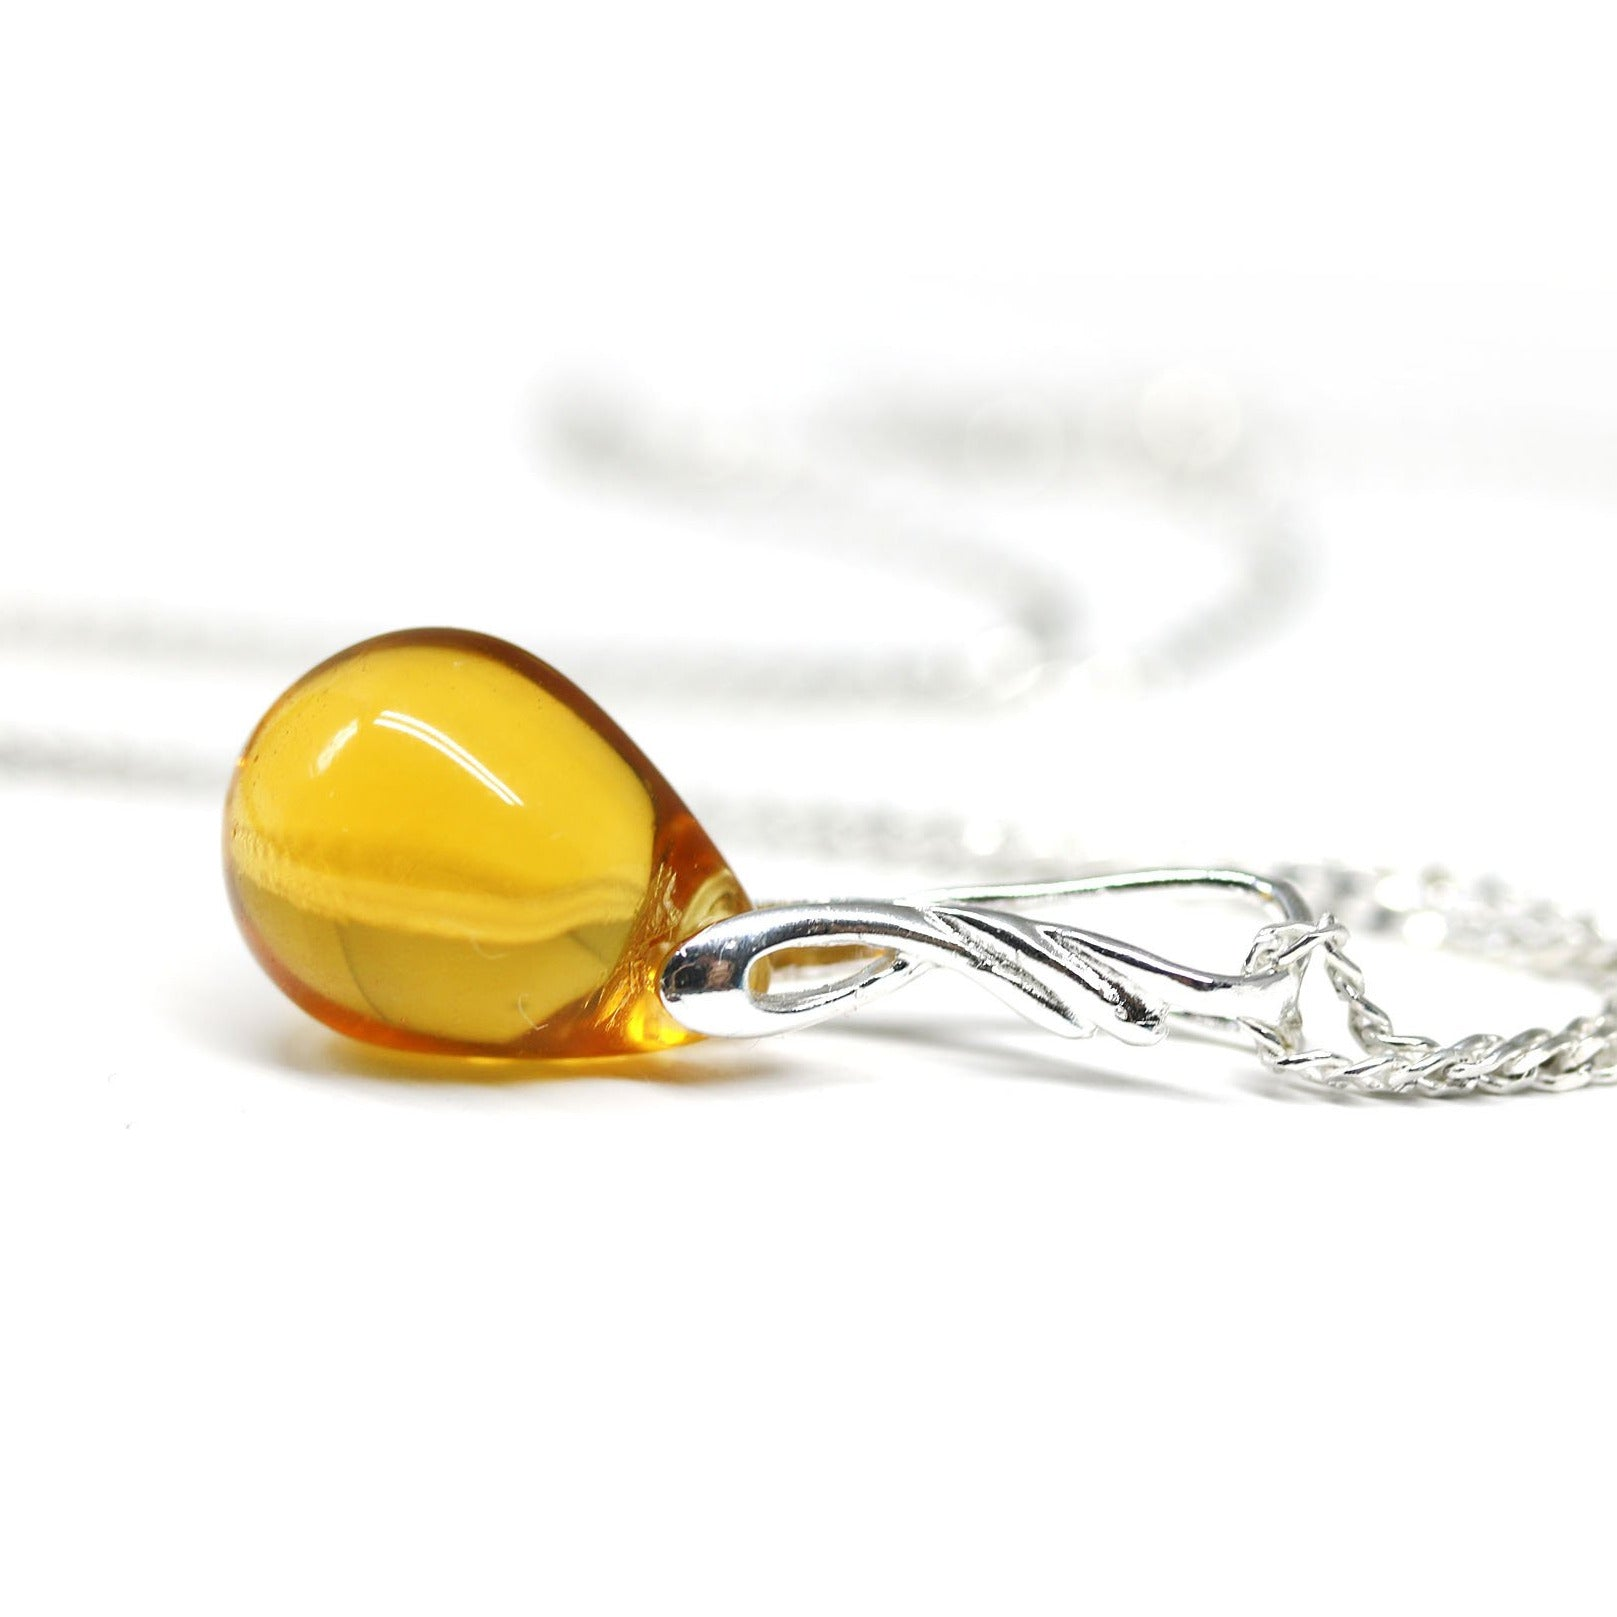 Amber yellow drop glass pendant on sterling silver chain